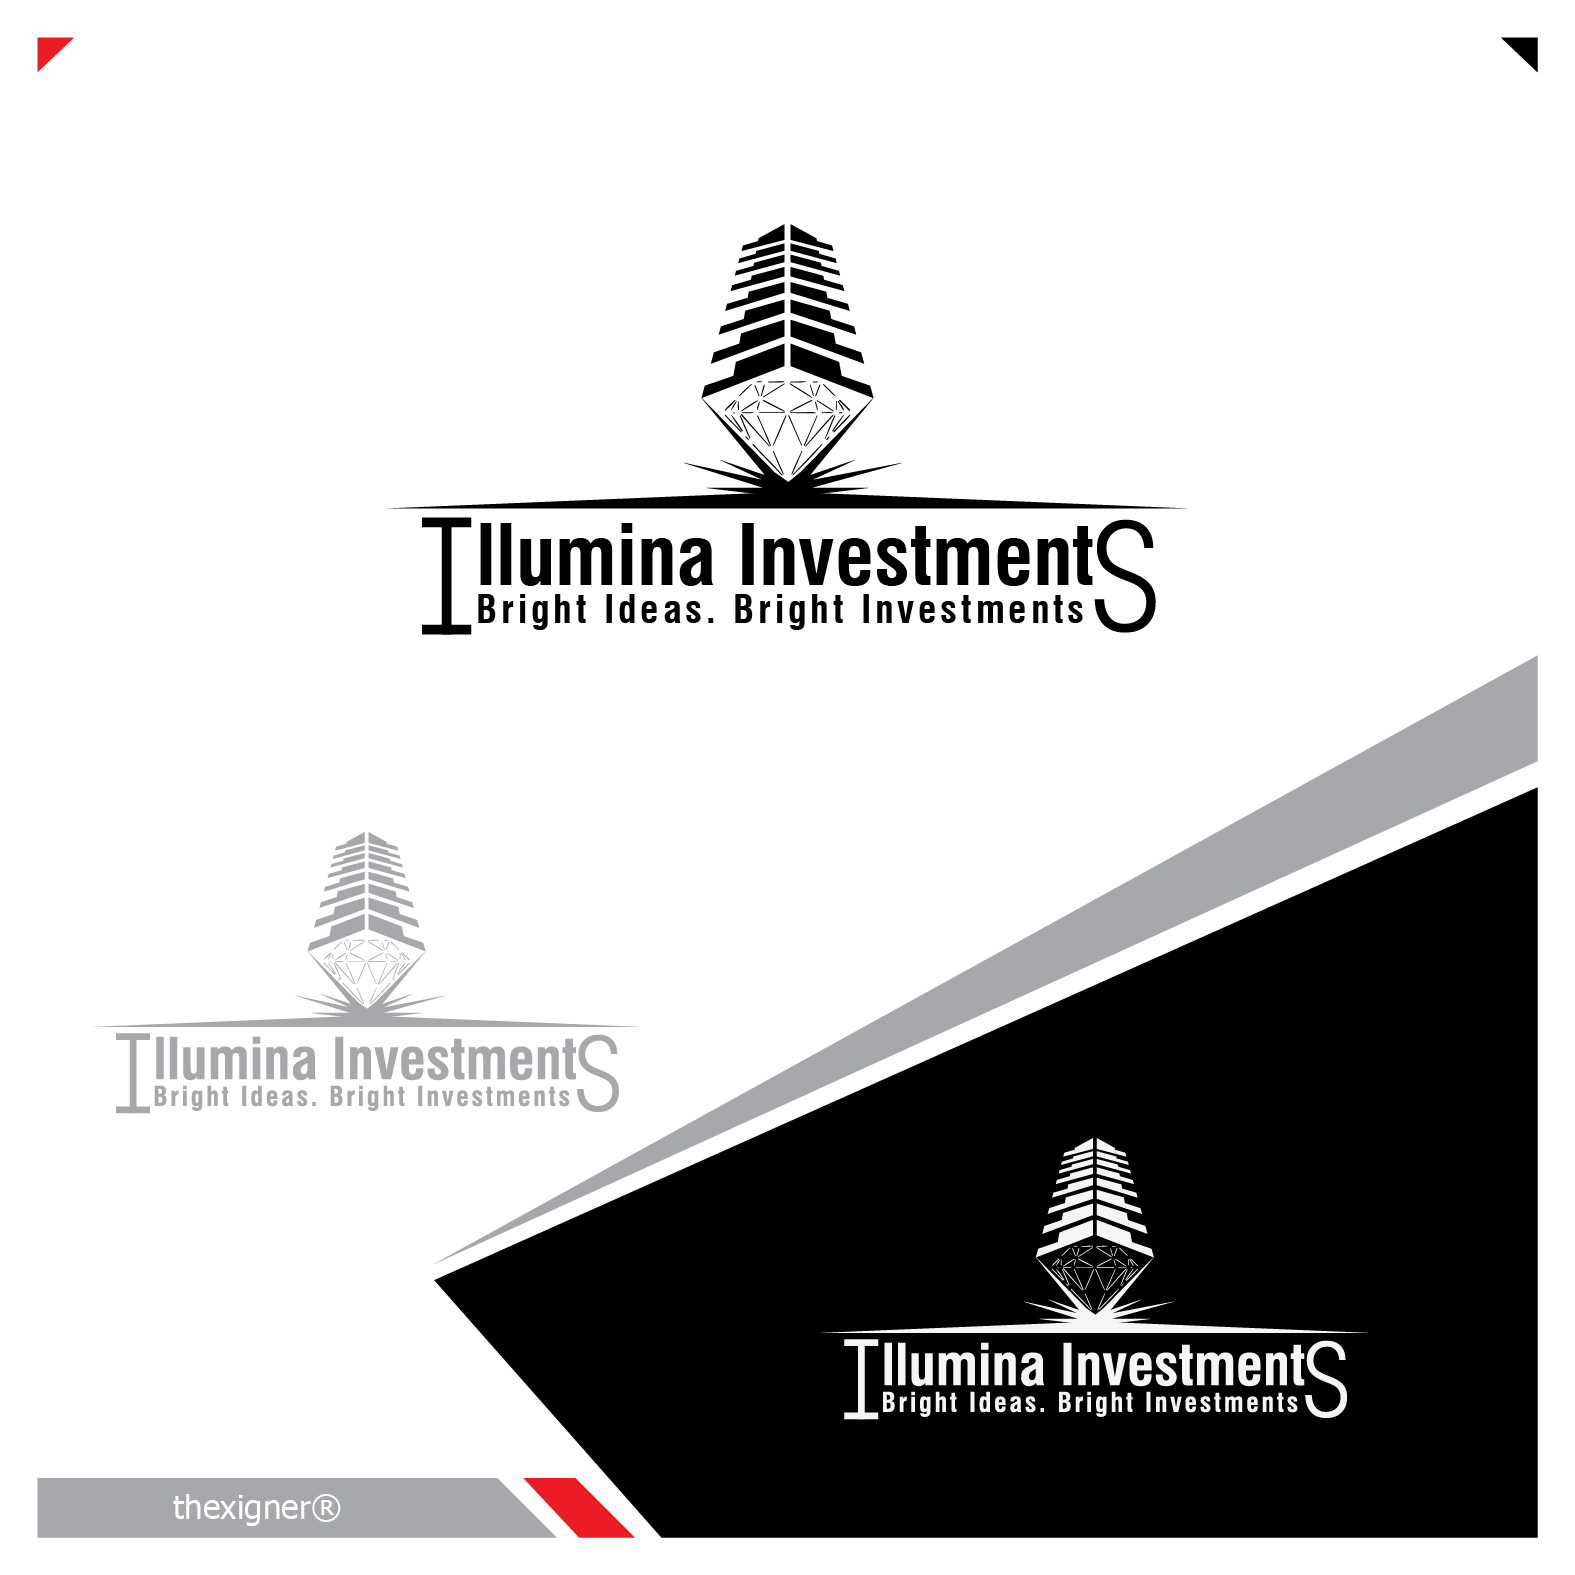 Logo Design by lagalag - Entry No. 64 in the Logo Design Contest Creative Logo Design for Illumina Investments.